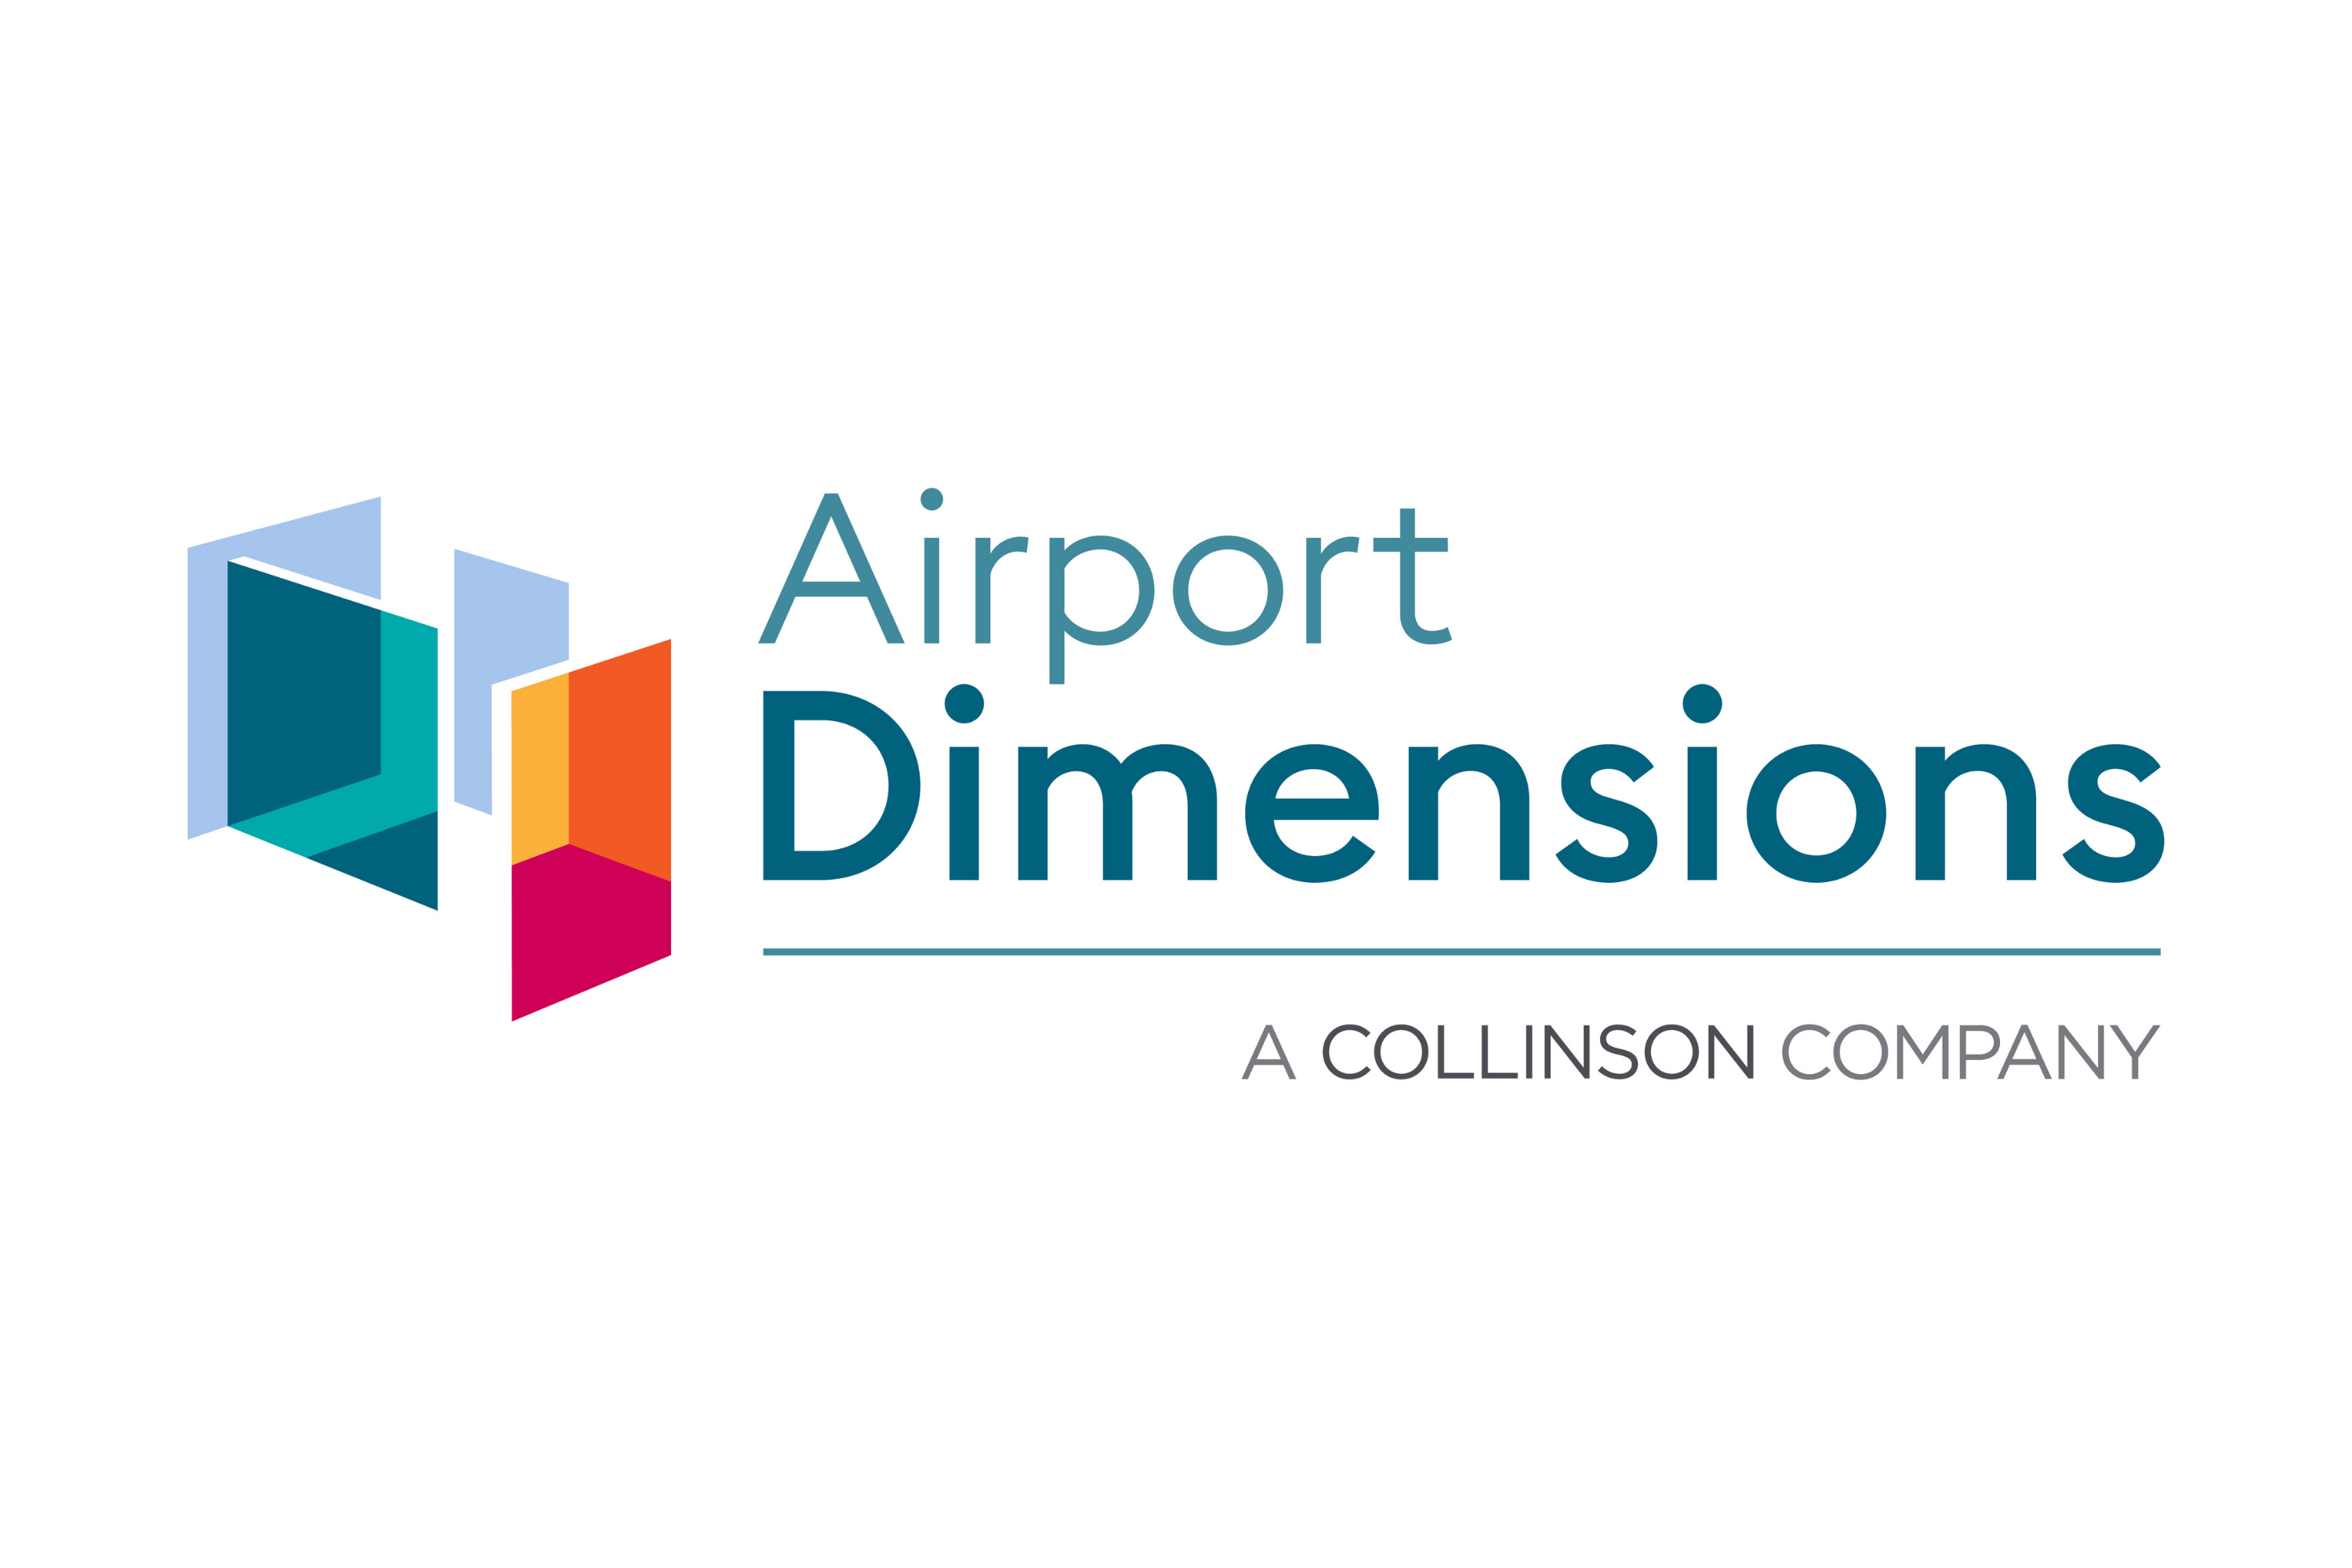 Airport Dimensions appoints new creative director and commercial manager